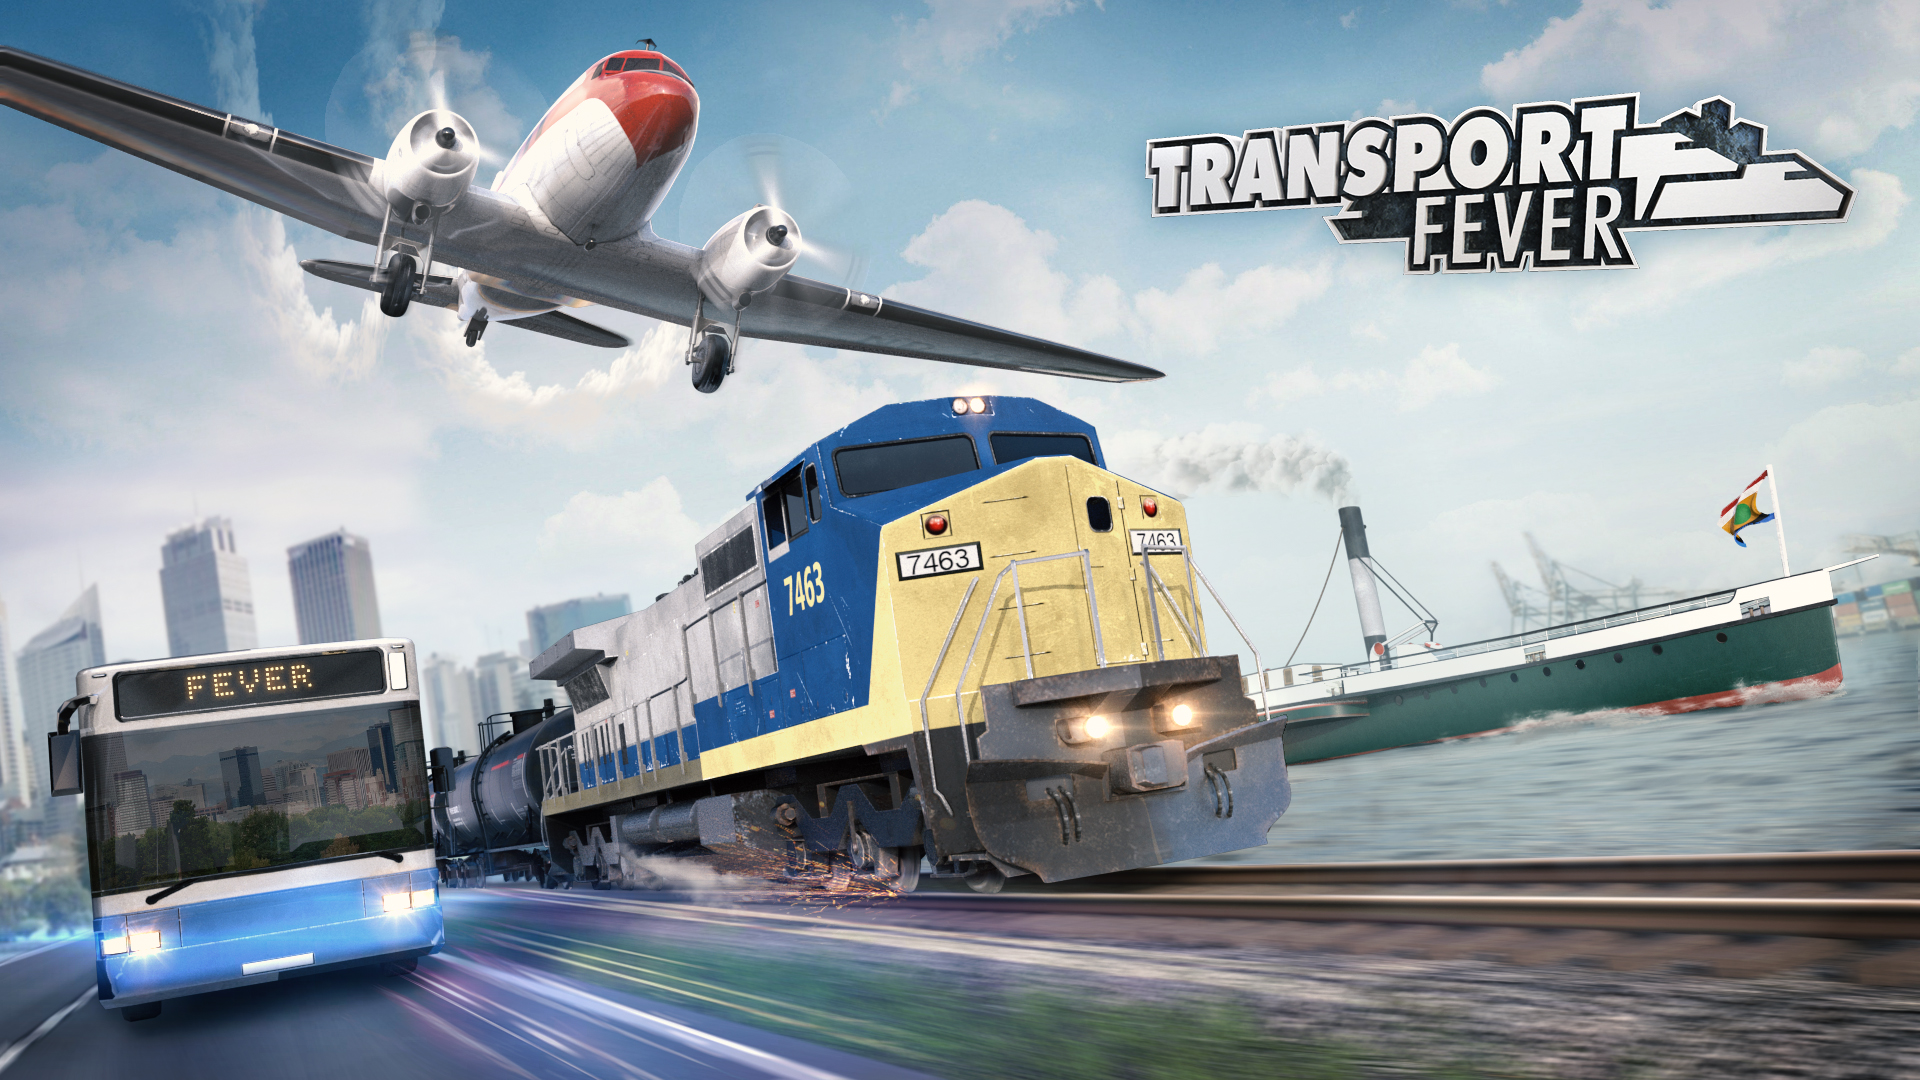 Transport Fever - Cover Art 1